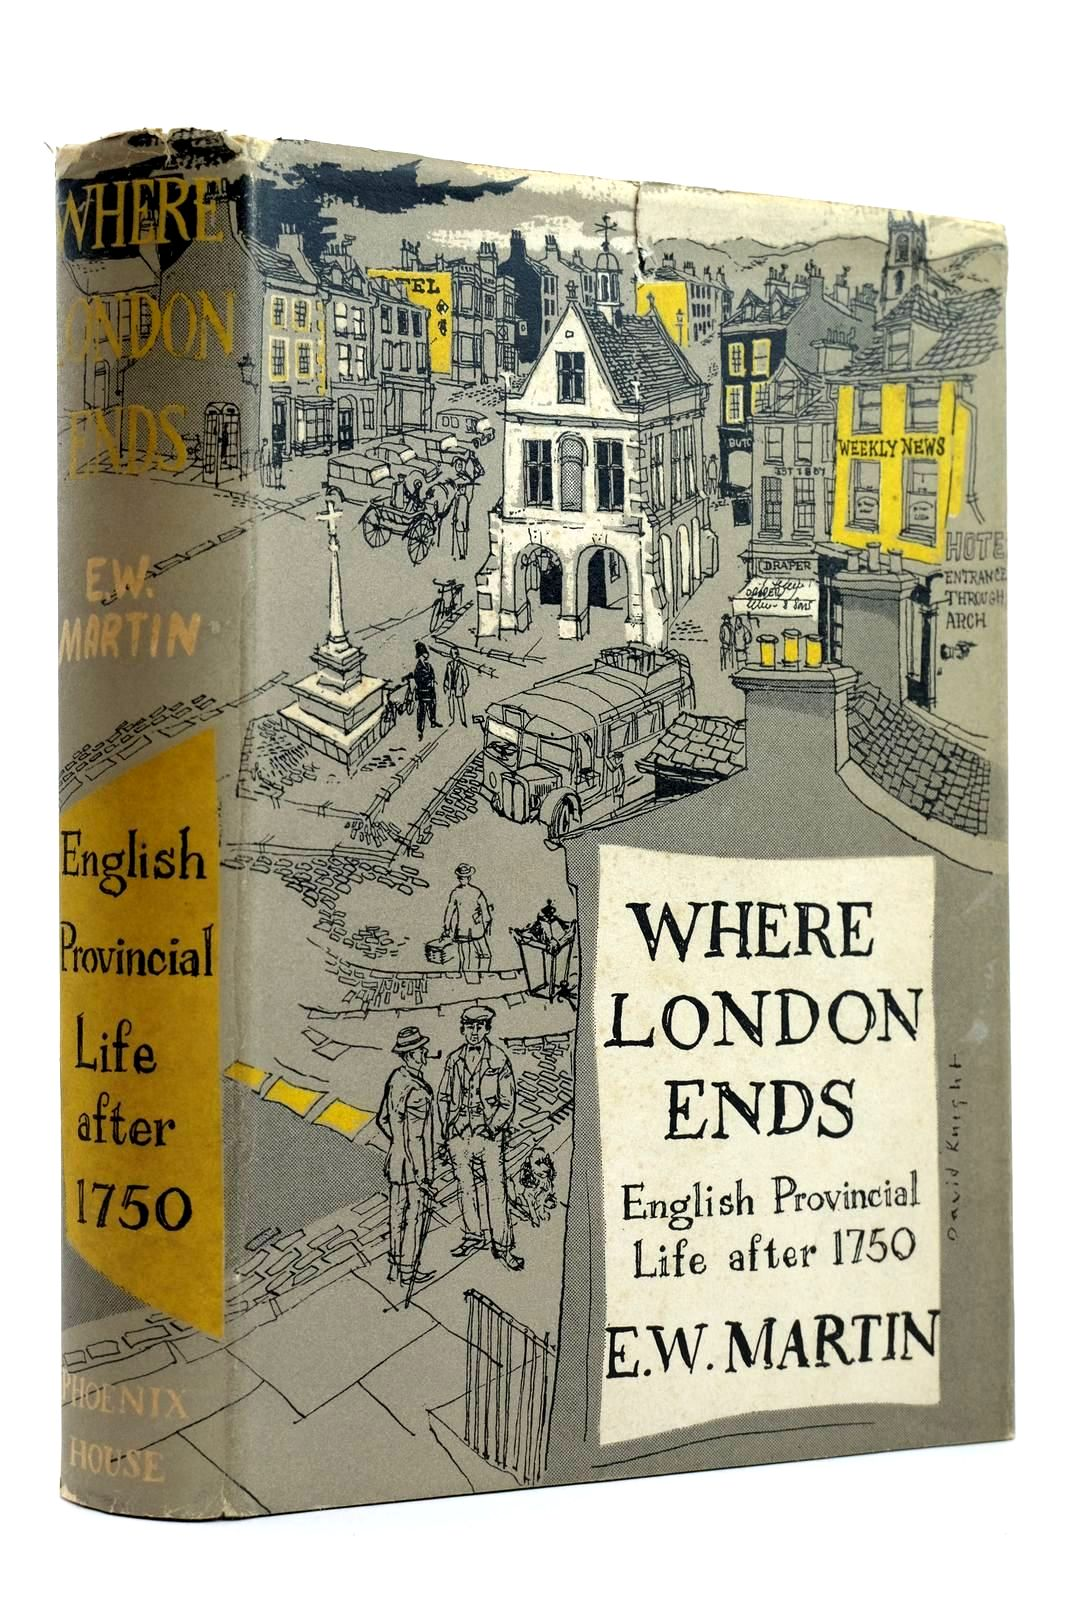 Photo of WHERE LONDON ENDS ENGLISH PROVINCIAL LIFE AFTER 1750 written by Martin, E.W. published by Phoenix House Ltd. (STOCK CODE: 2131984)  for sale by Stella & Rose's Books